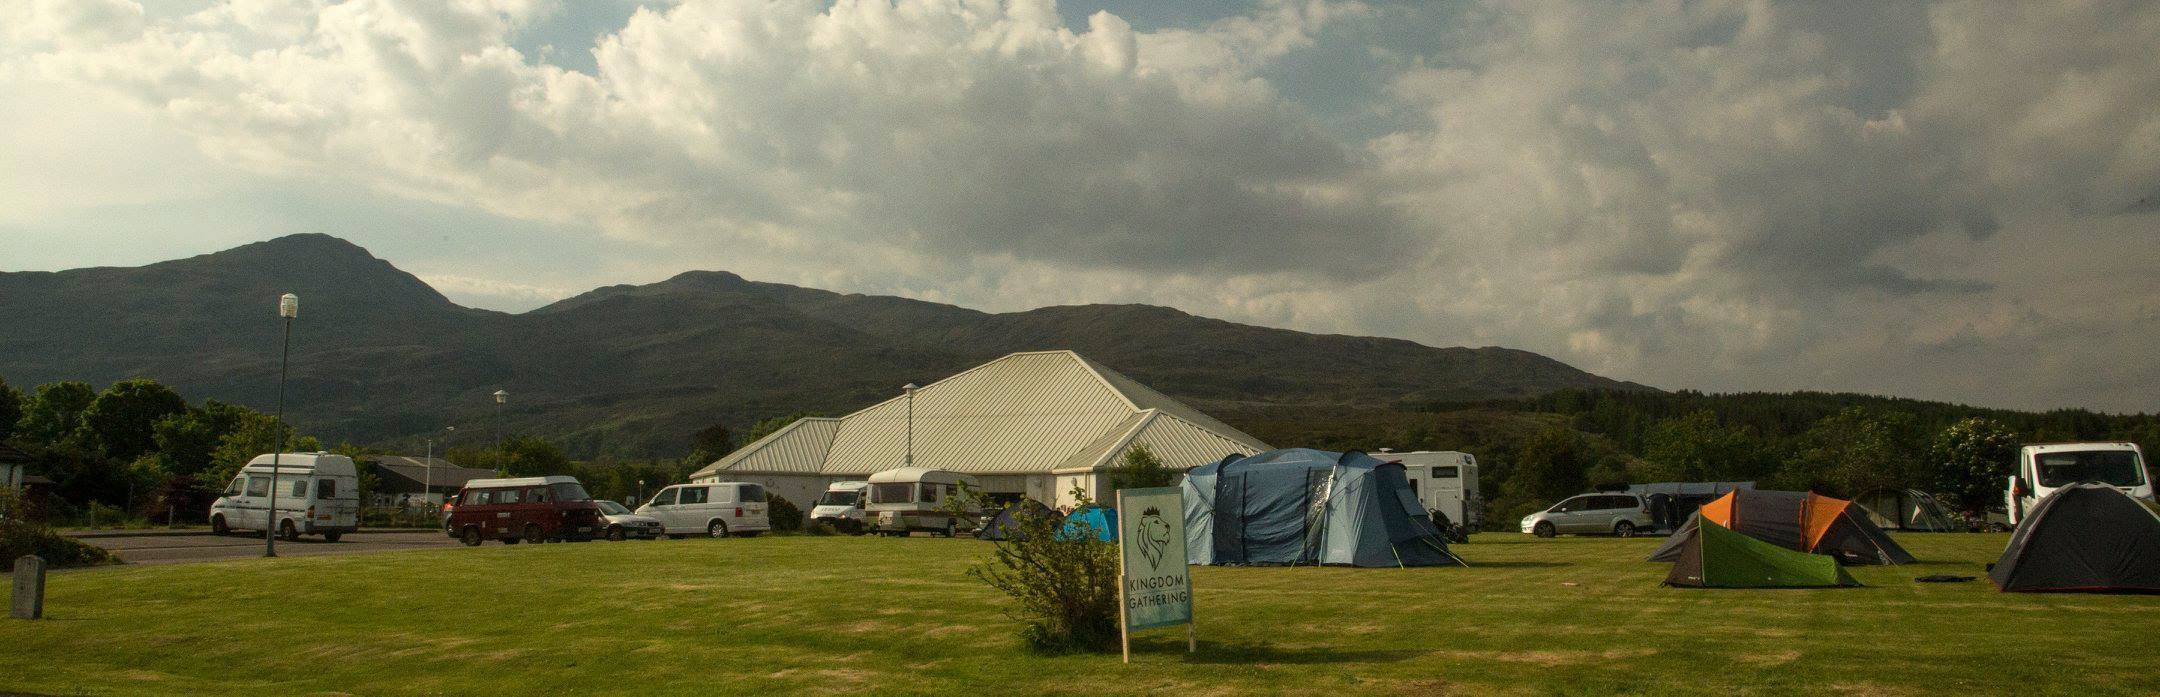 Camping, Caravans and lodgings if you can find one.